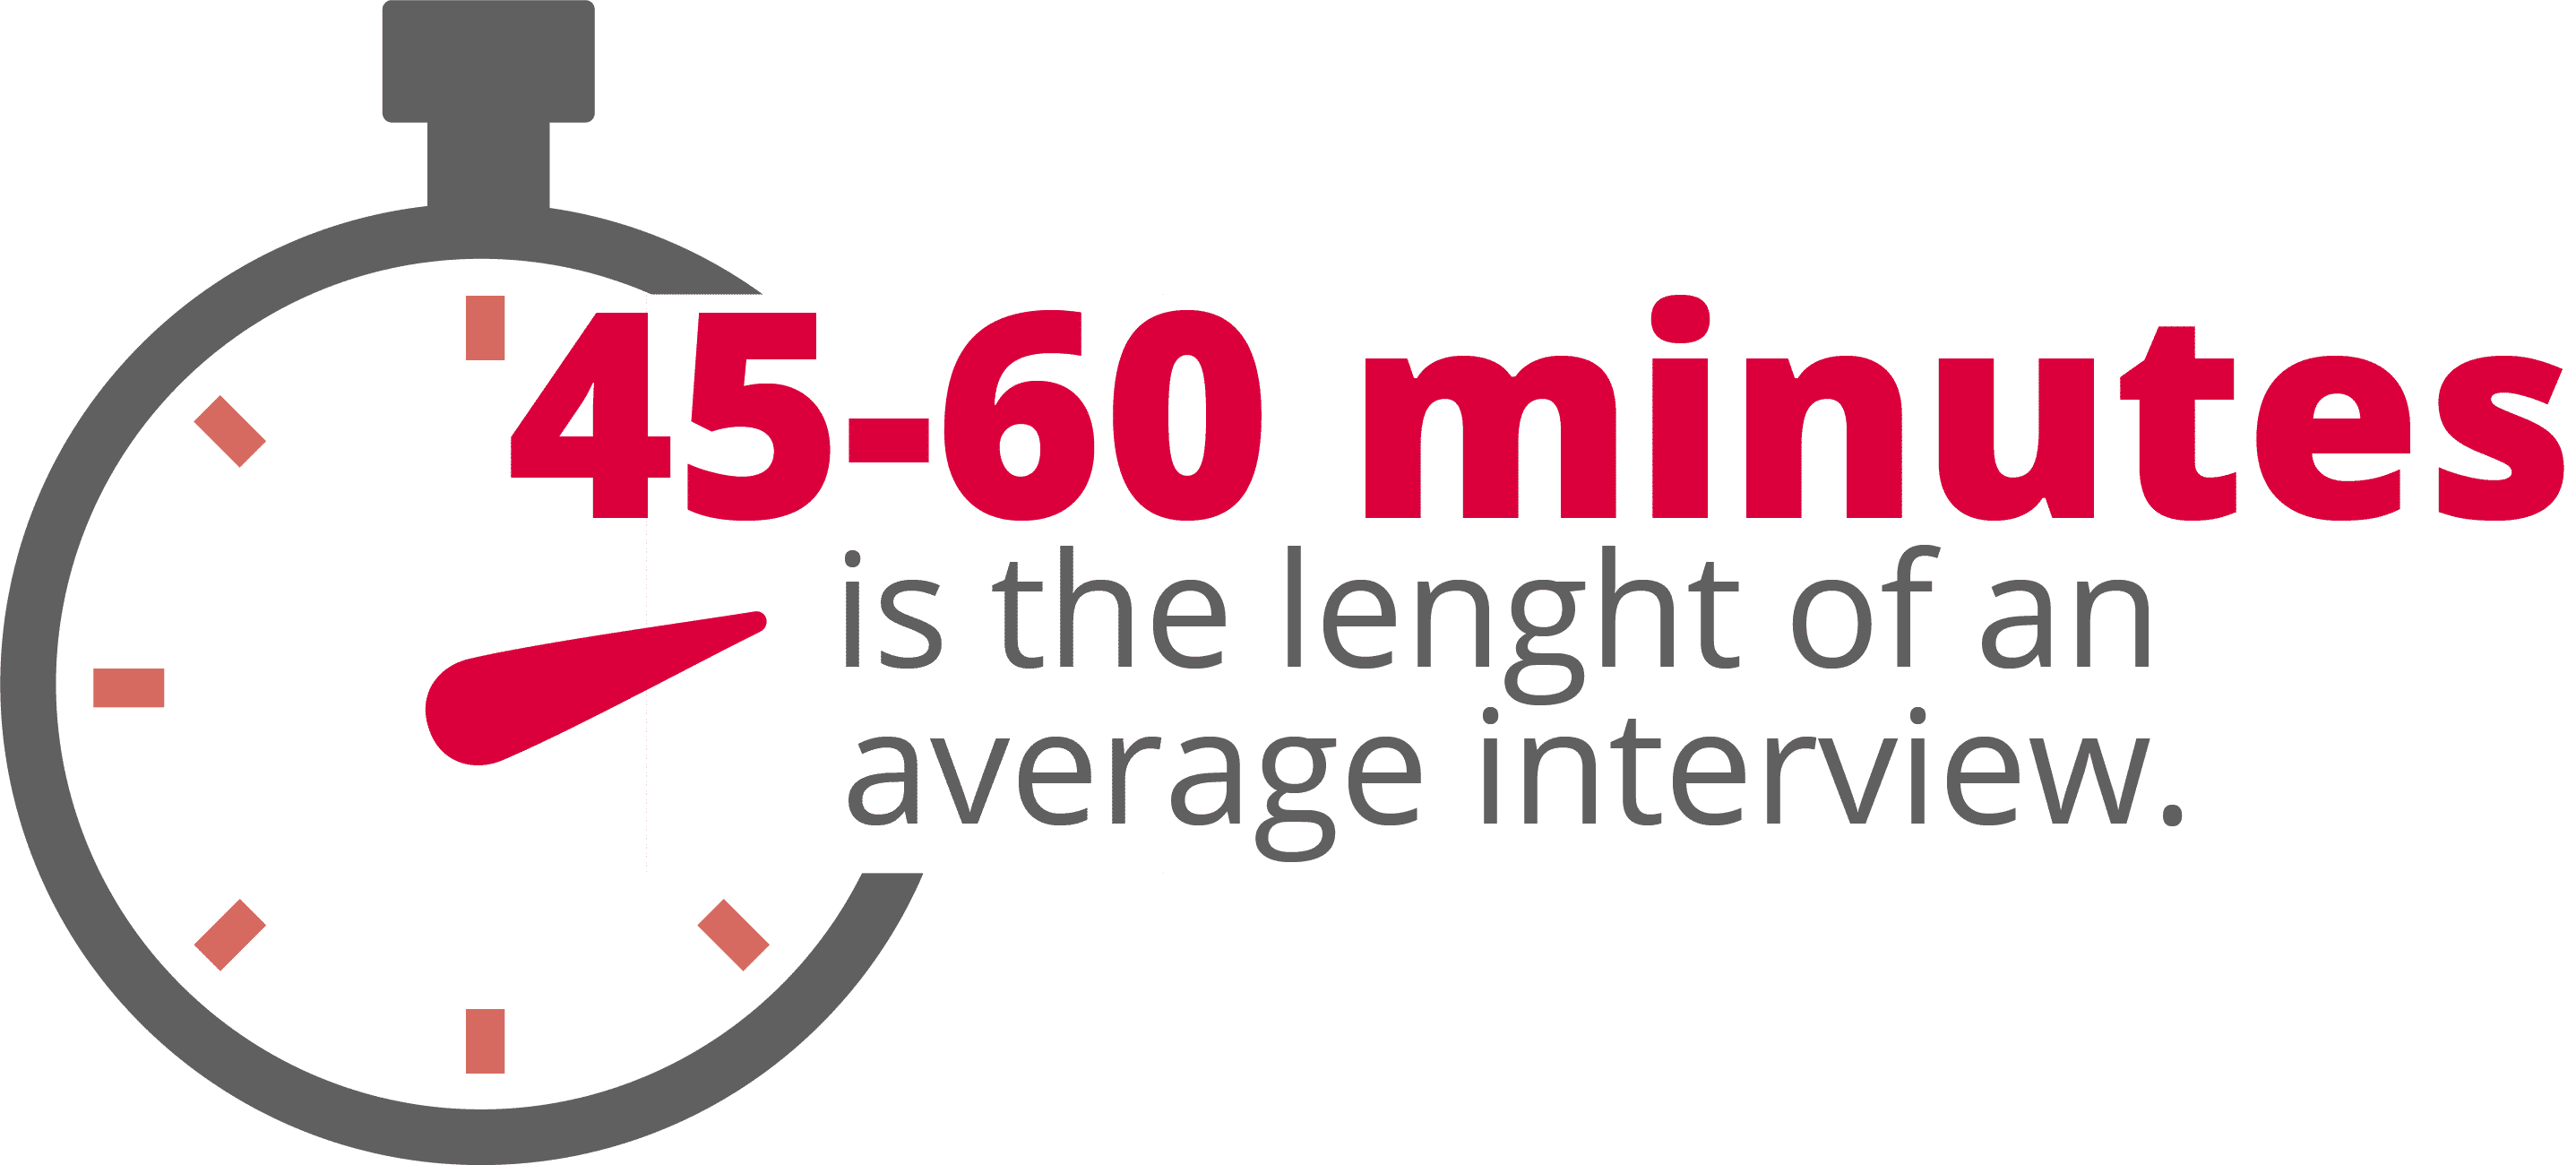 The average job interview lasts between 45 and 60 minutes